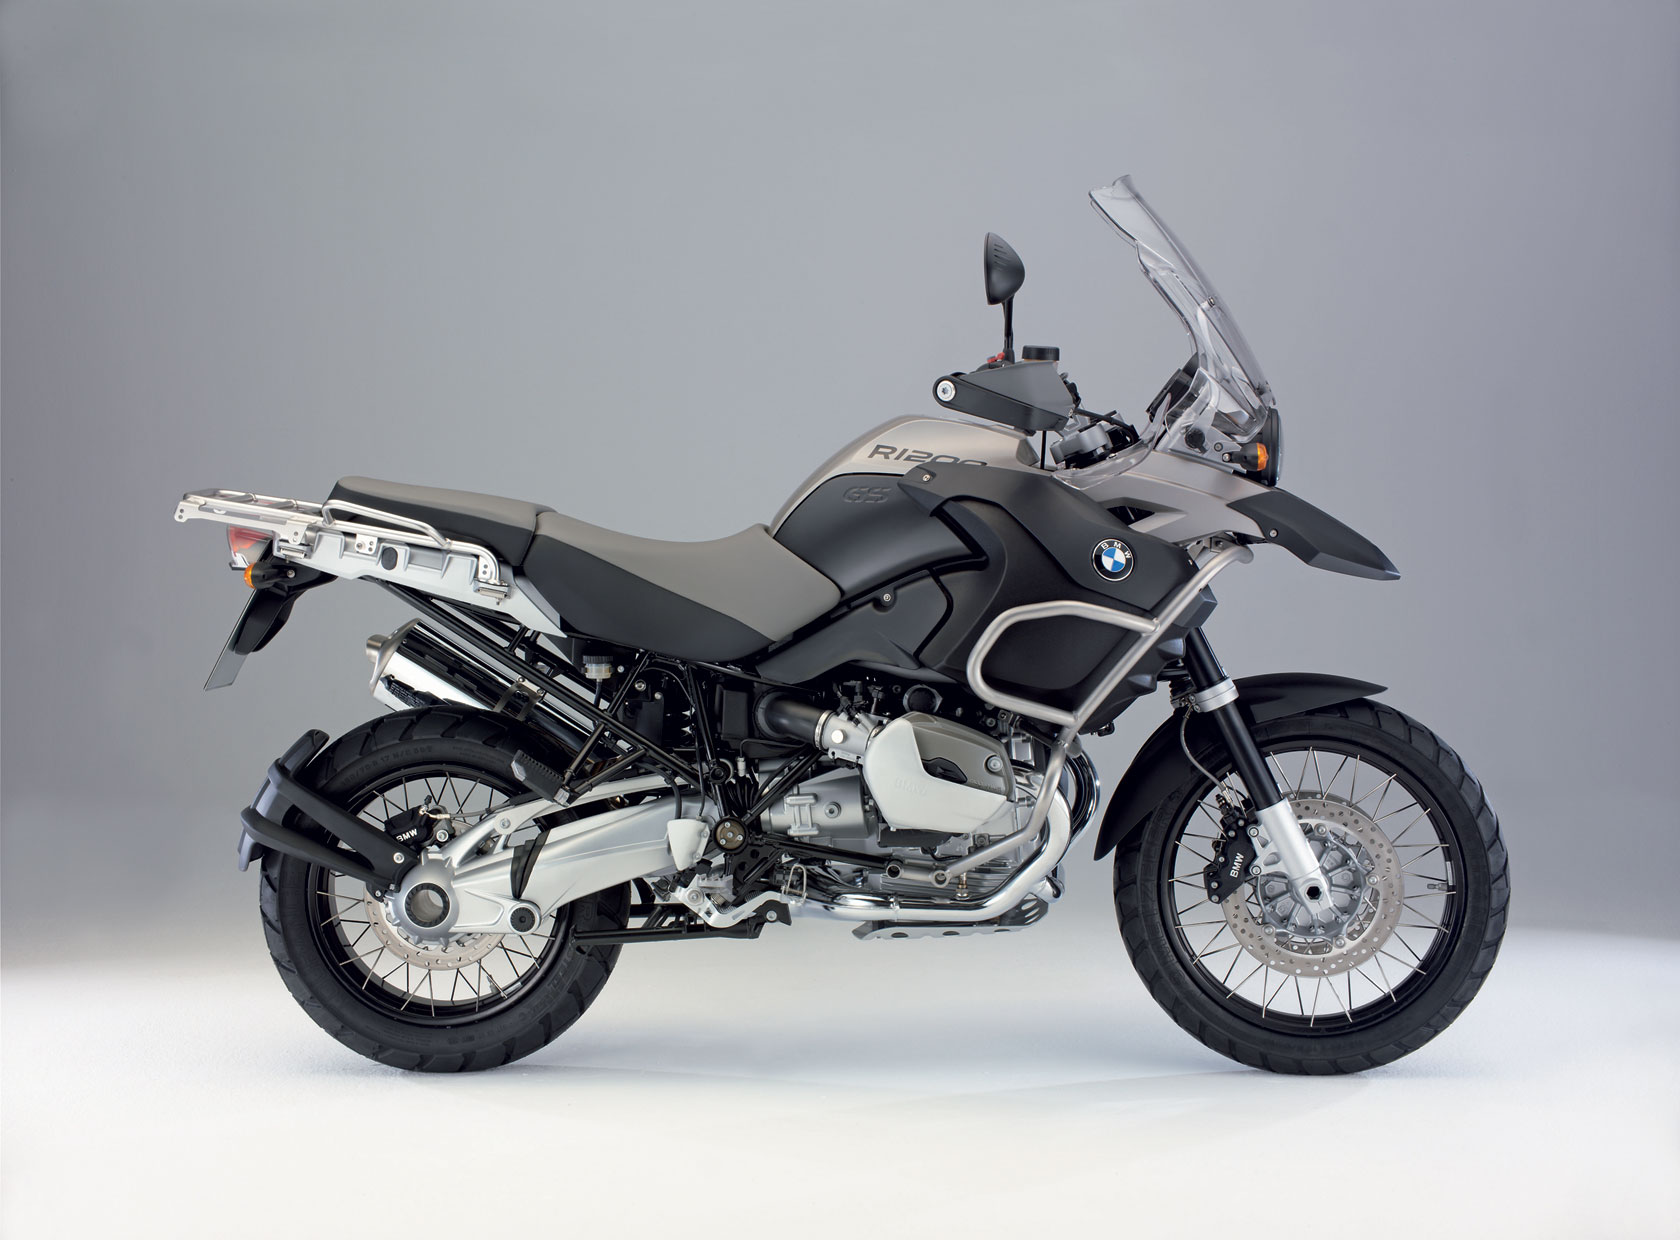 2009 bmw r1200gs adventure. Black Bedroom Furniture Sets. Home Design Ideas